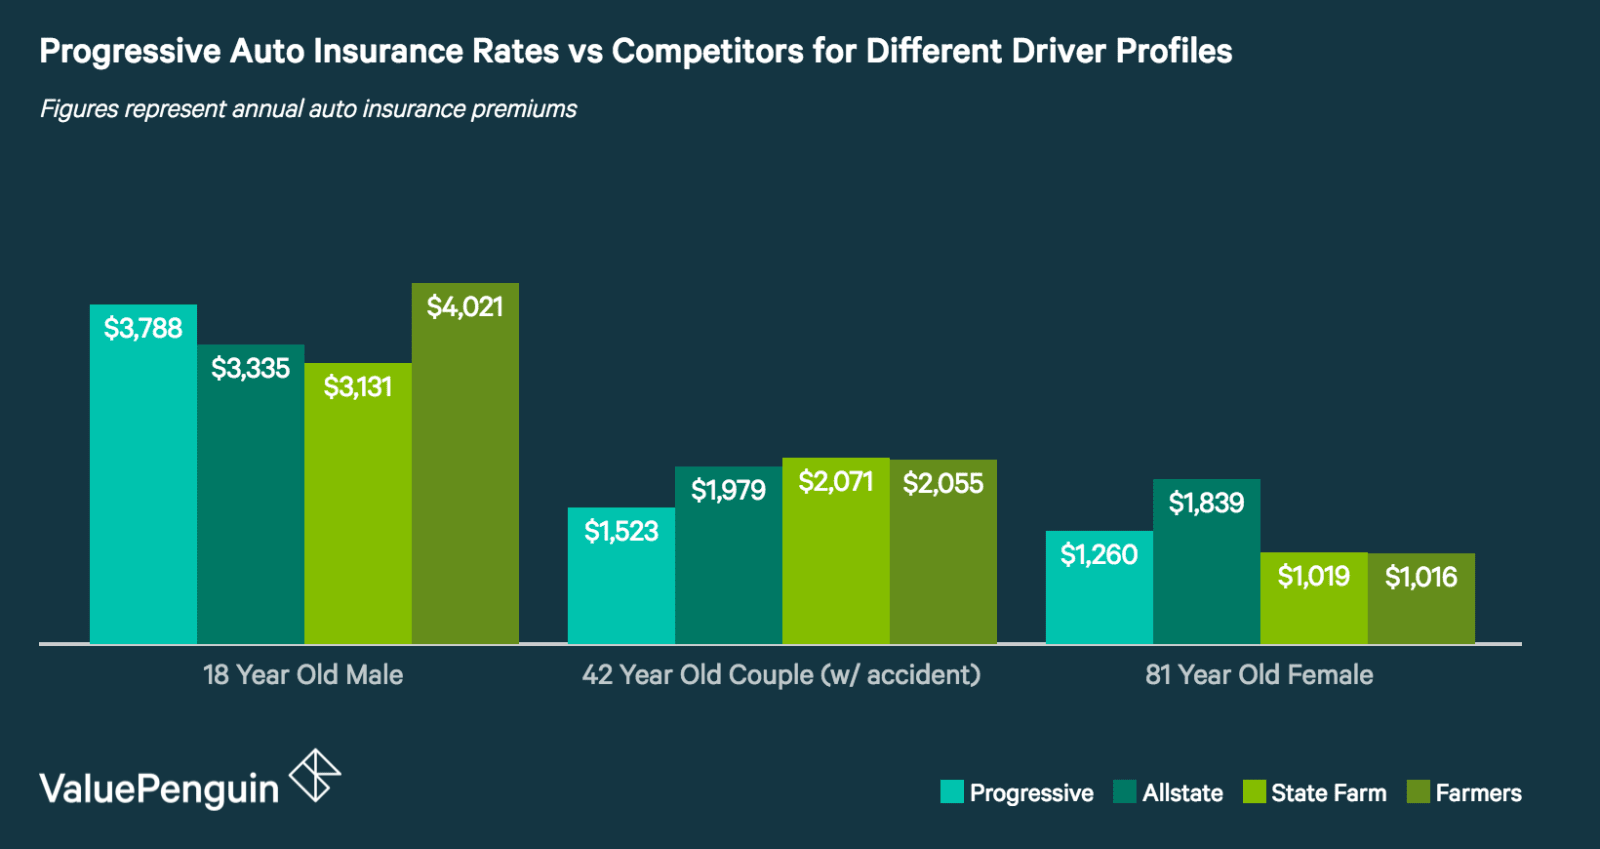 How Do Progressive's Auto Insurance Quotes Compare to Other Insurers?